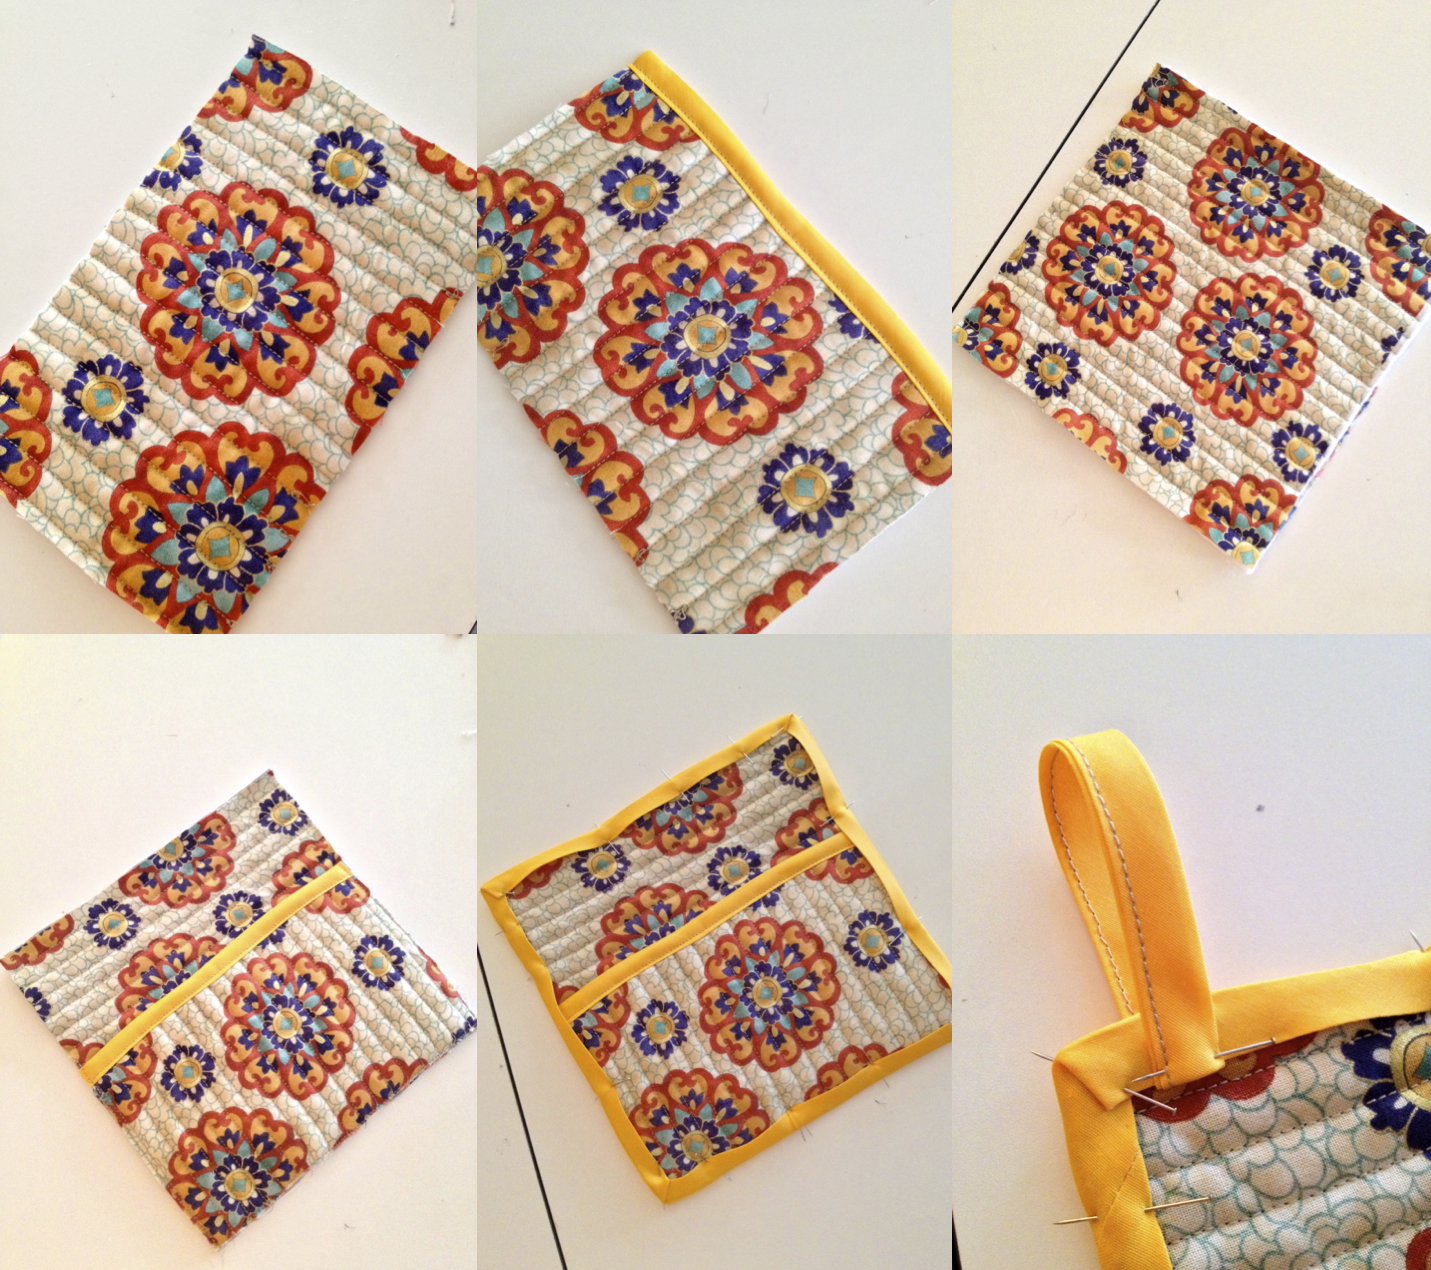 Homemade Pot Holders: Quilted Pot Holders With Pocket